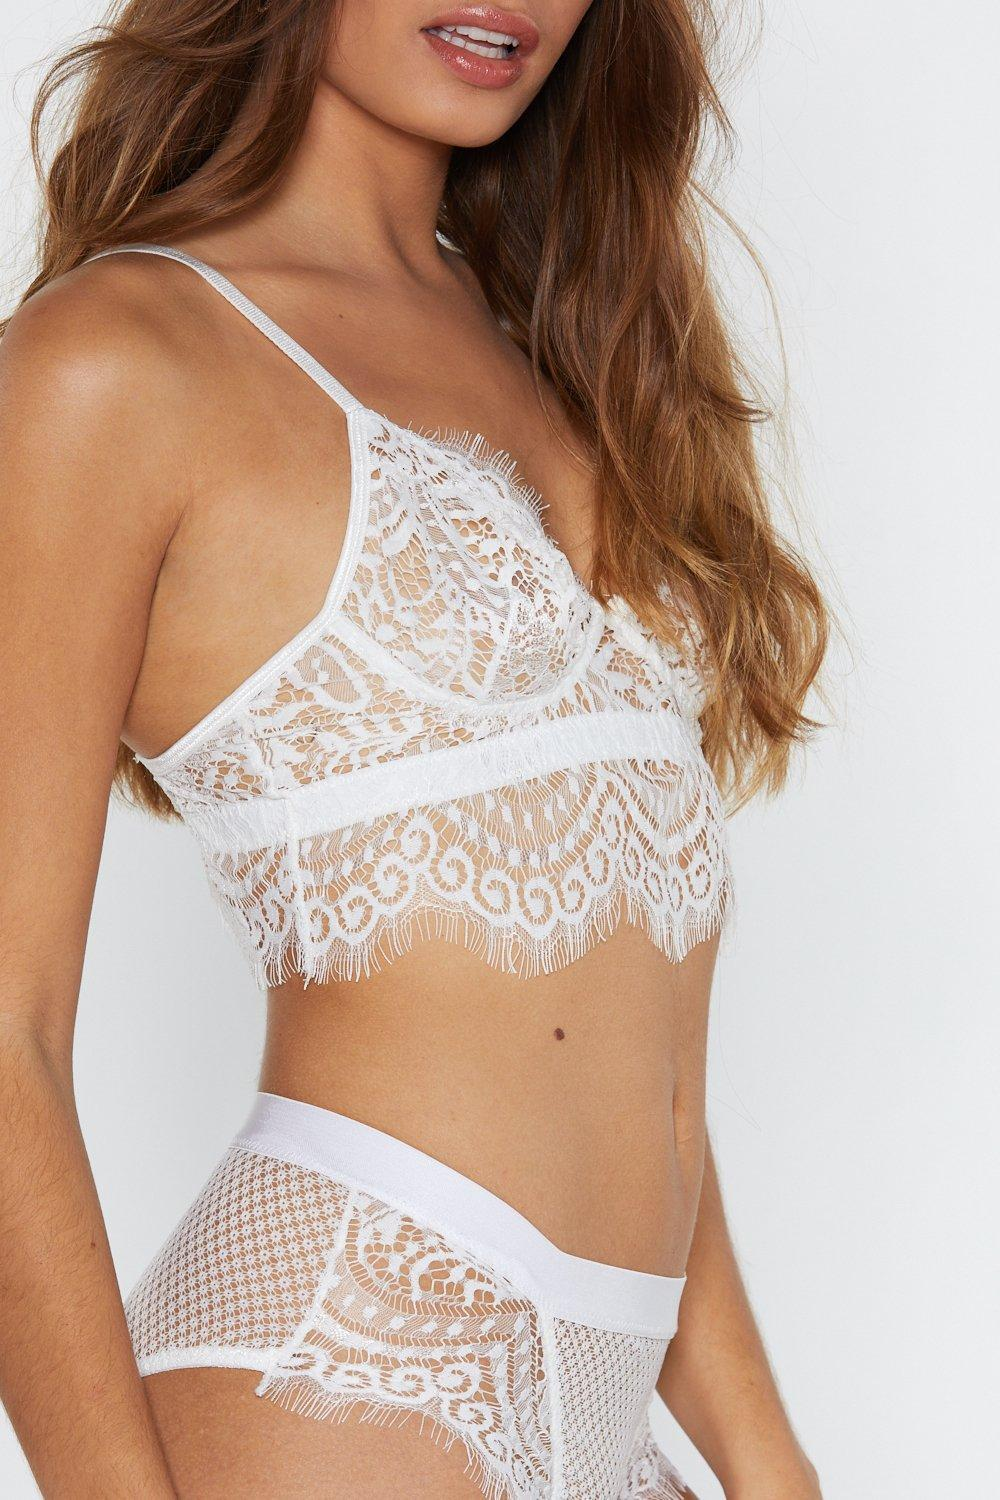 76dd93d5a45 ... God Is A Woman Strappy Lace Bralette And Panty Set - Lyst. View  fullscreen